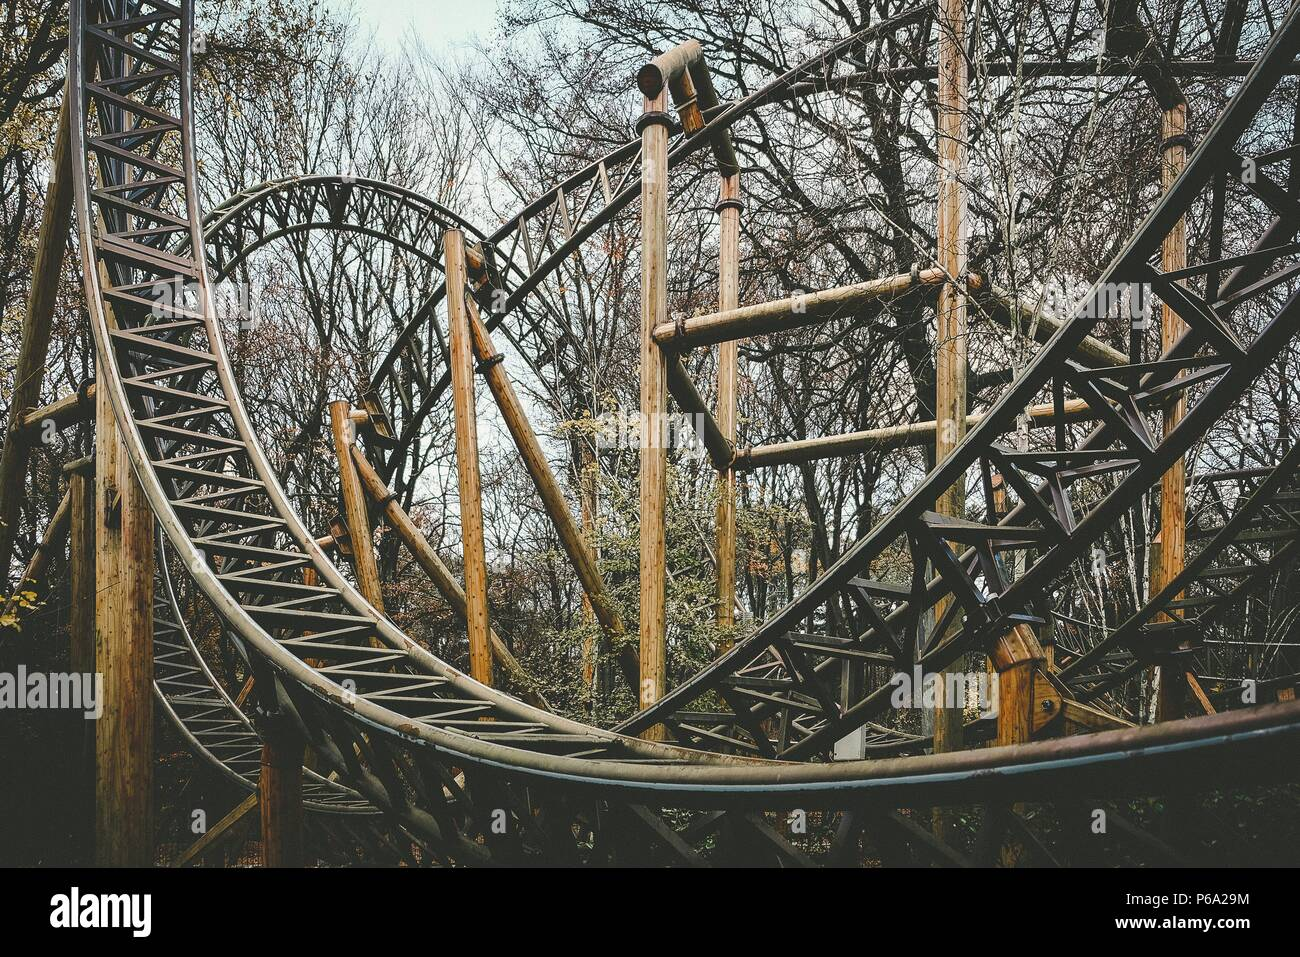 Abandoned Theme Park Roller Coaster Ride In Autumn In Europe Stock Photo Alamy